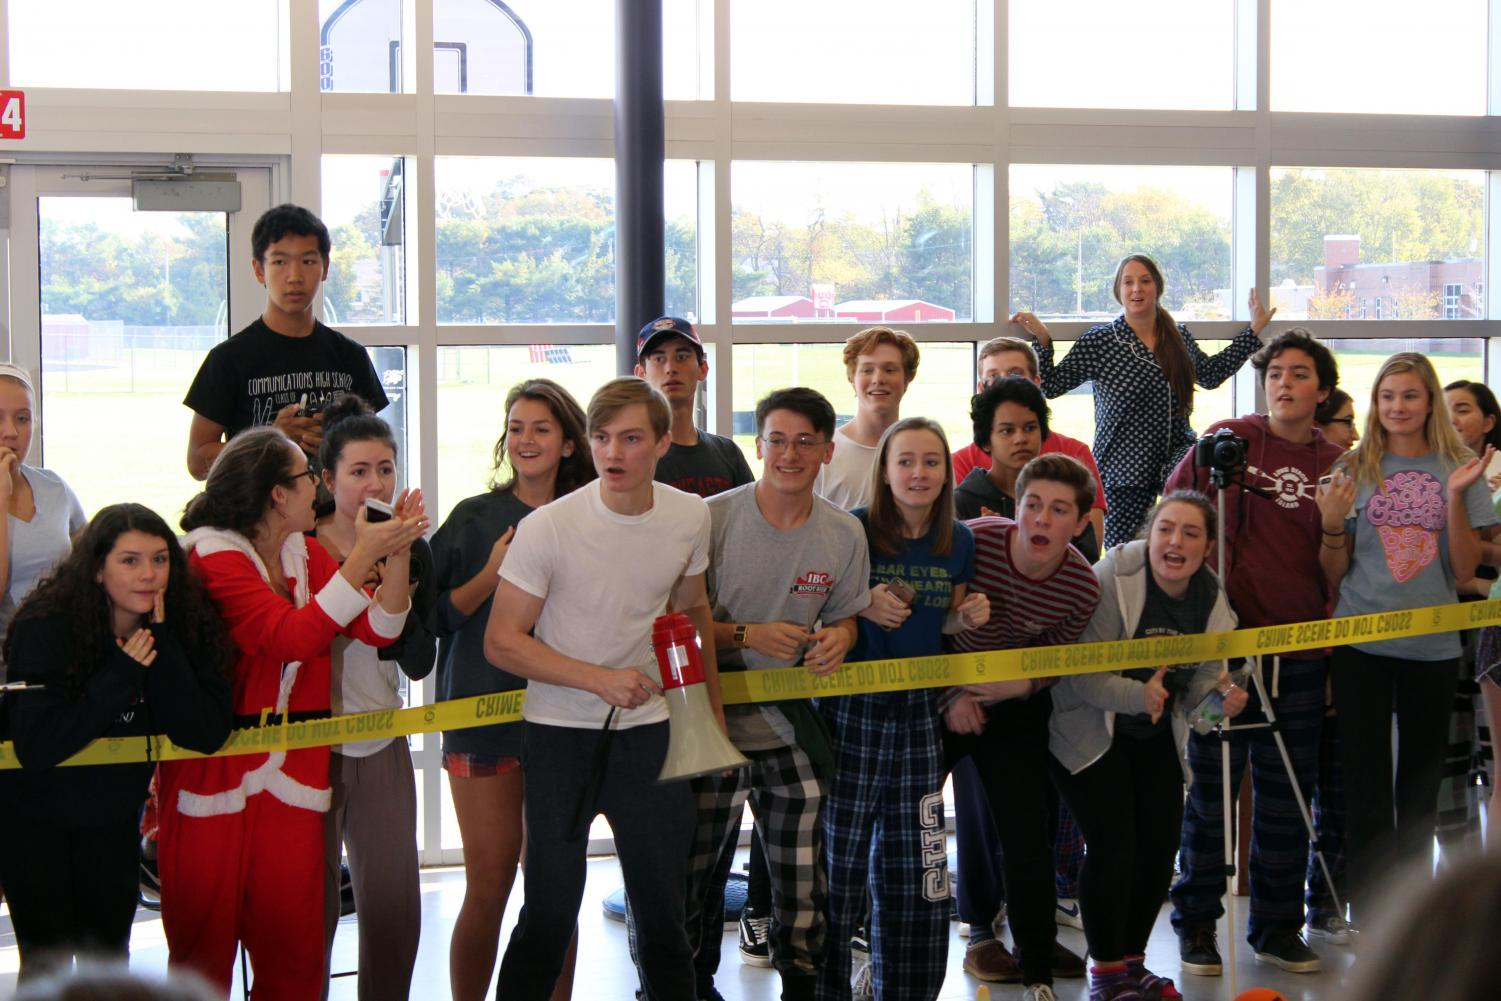 Members+of+the+senior+class+collectively+watch+the+Dodgeball+game+and+cheer+for+their+class+during+the+semifinals+game+between+the+sophomores+and+the+seniors.